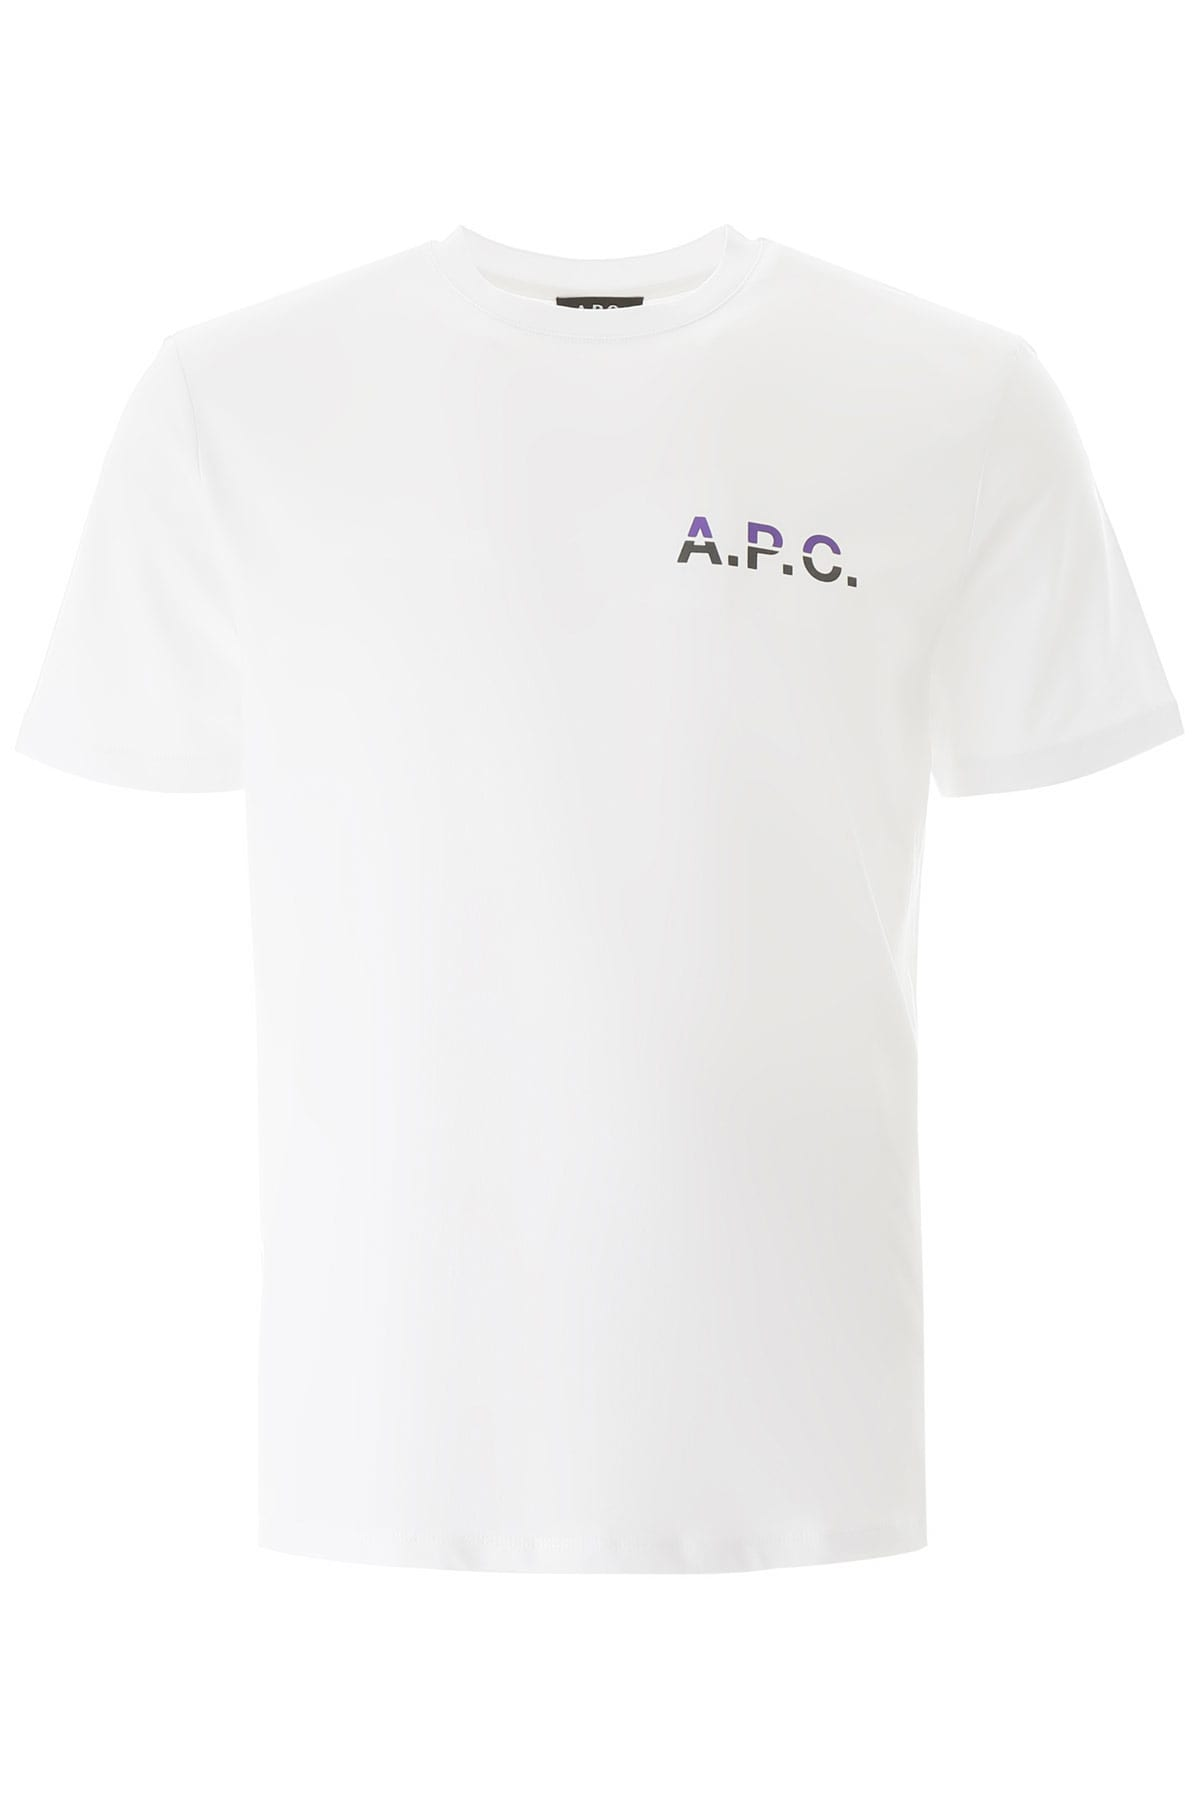 A.P.C. DAVID T-SHIRT WITH LOGO